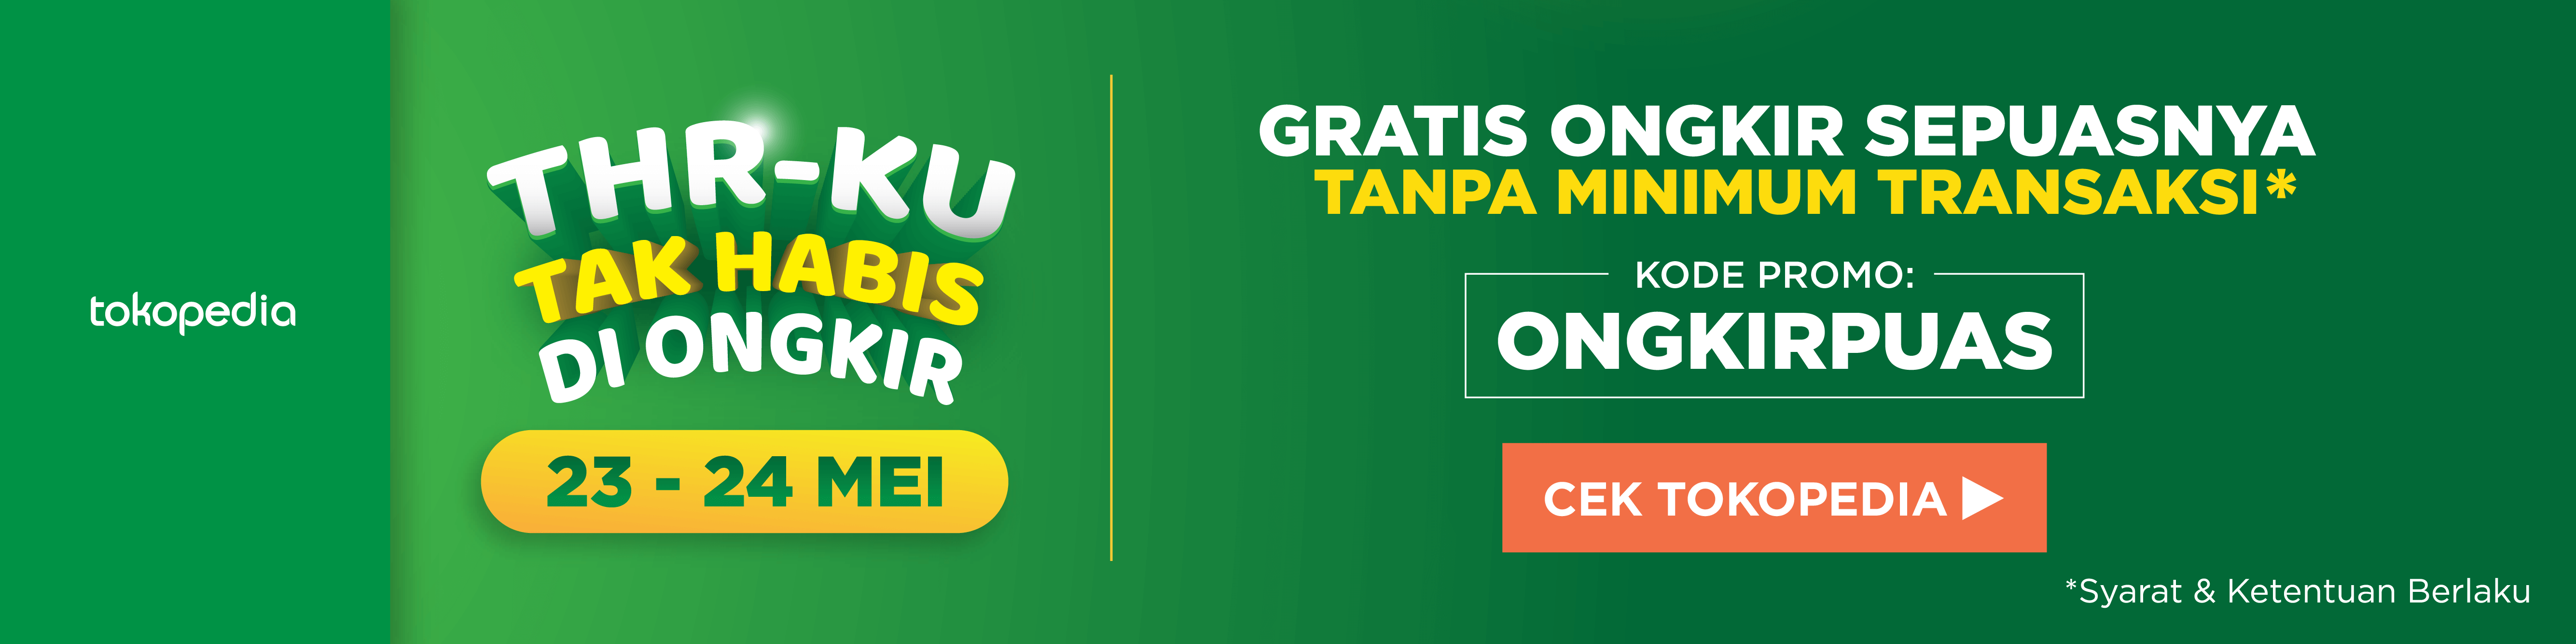 Tokopedia Extra 24 May